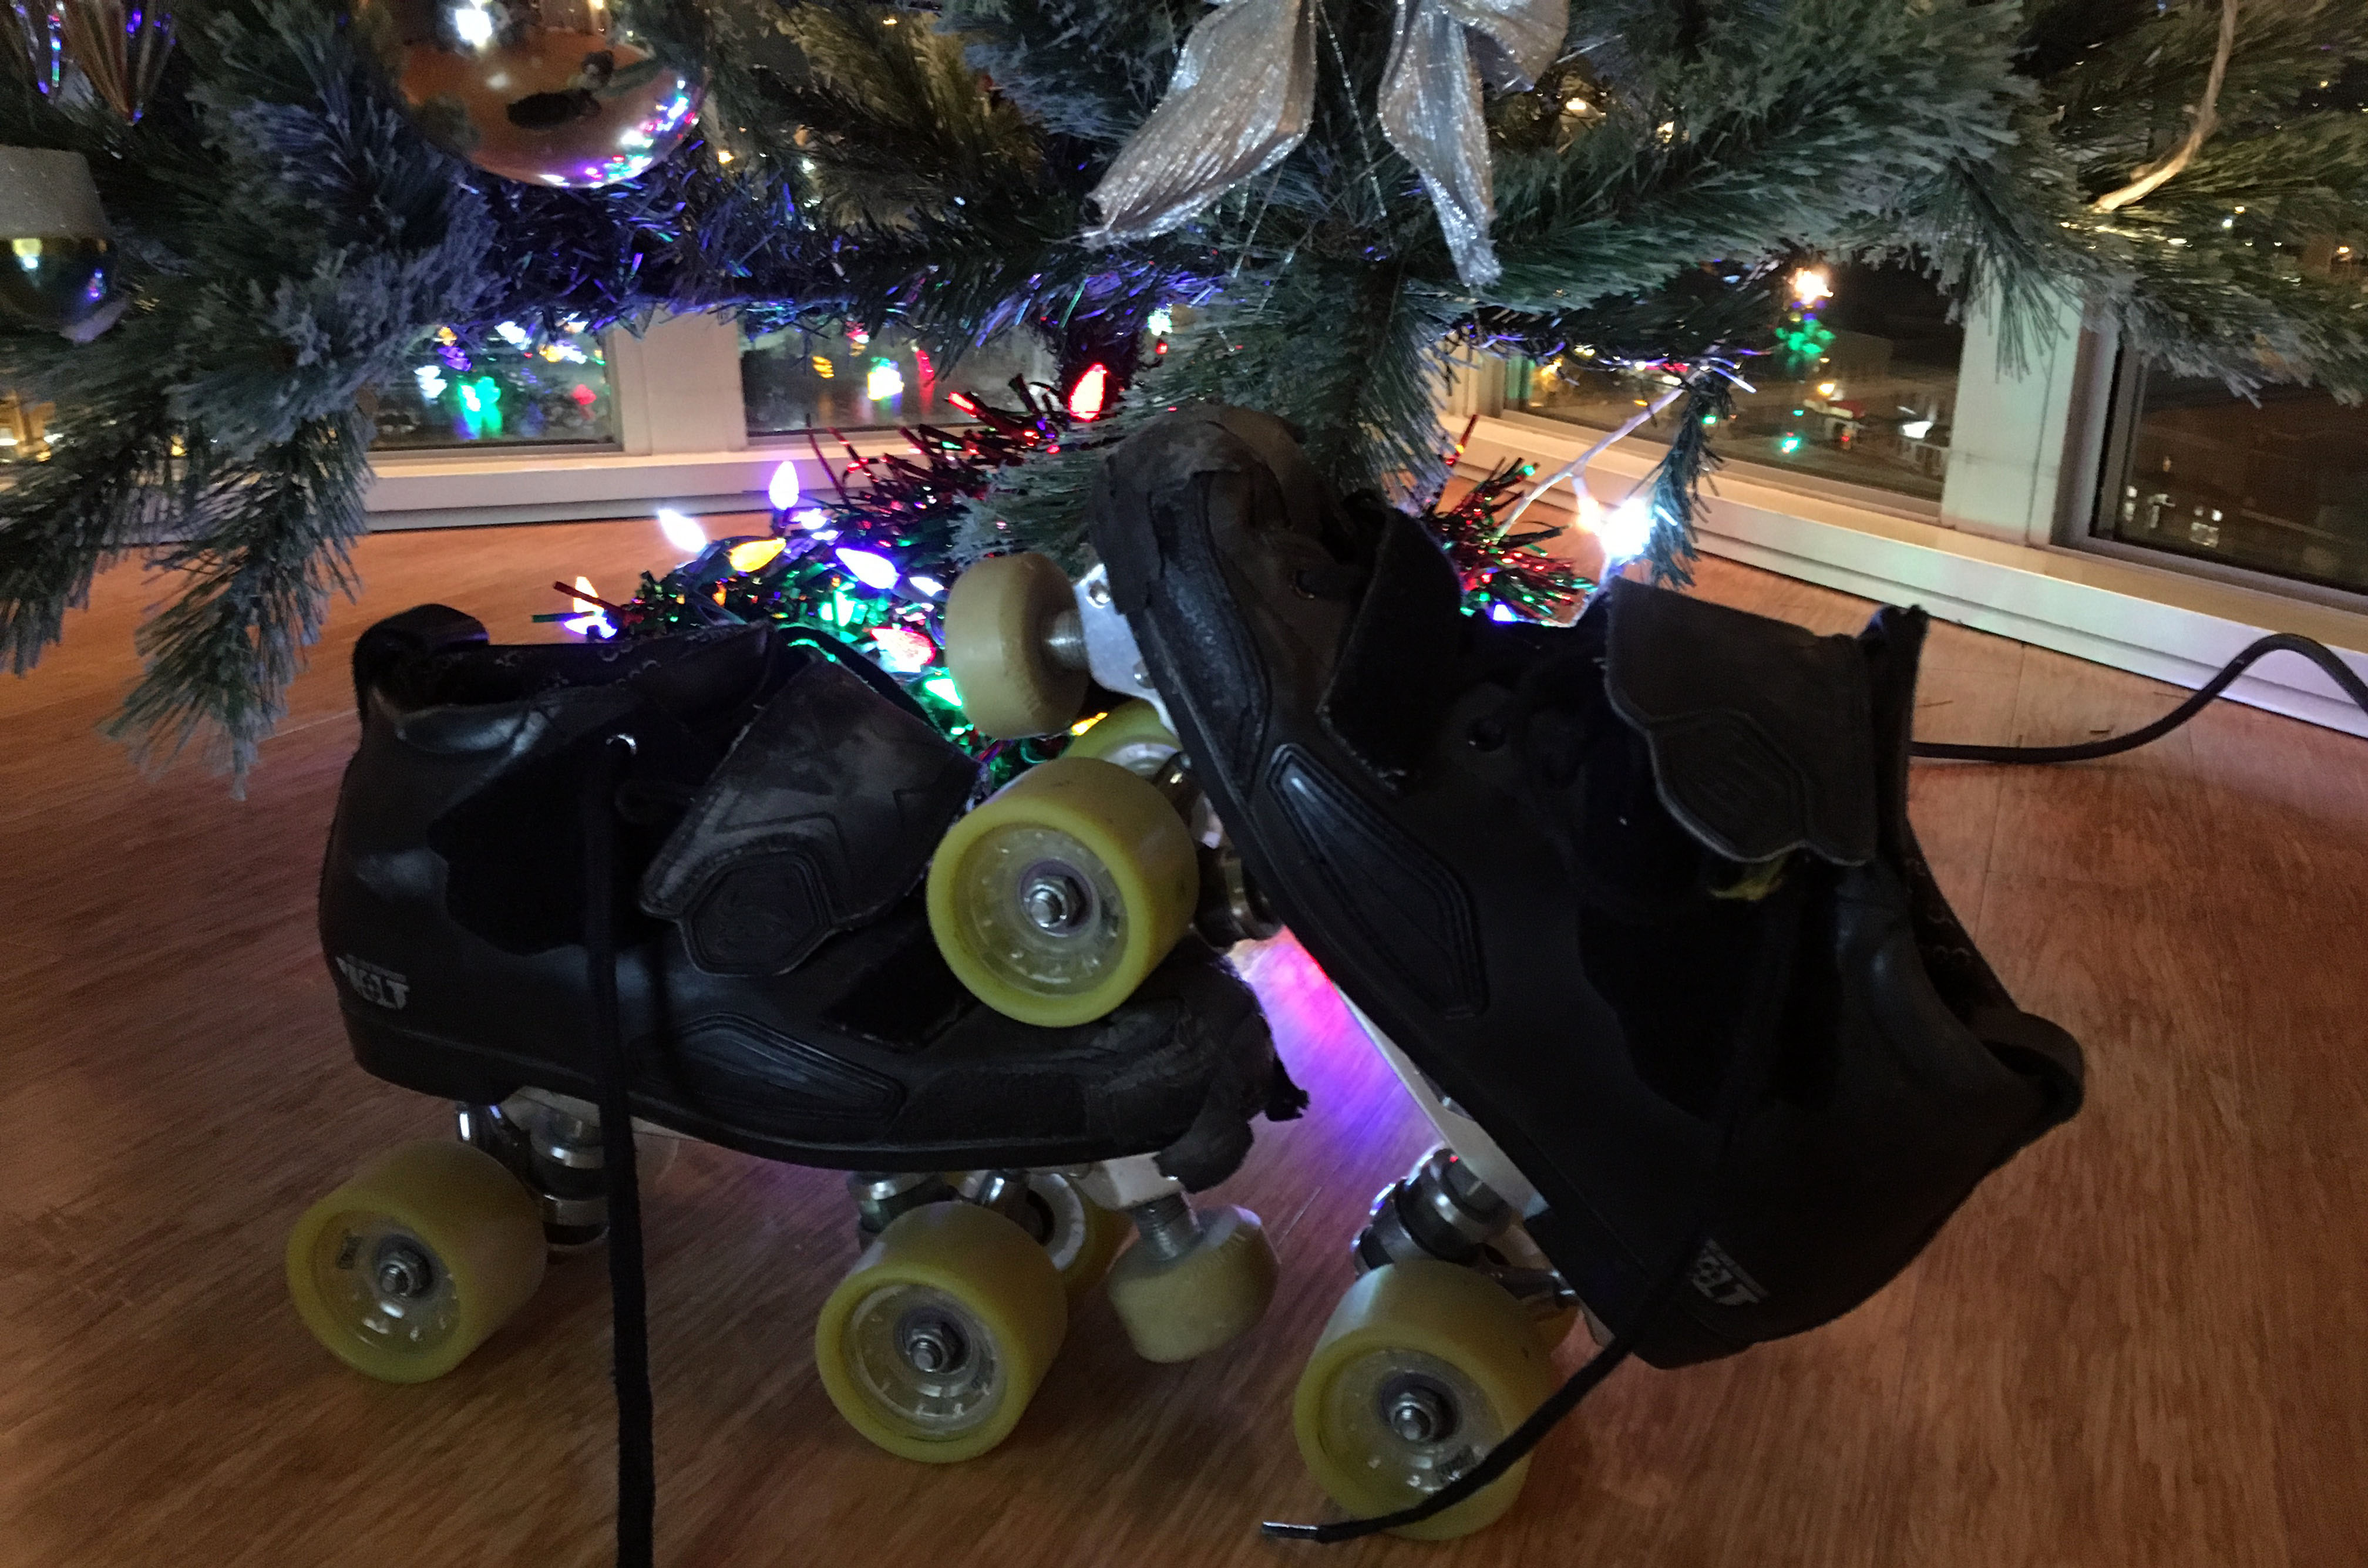 Come to 2015's pentultimate Raw Meat Roller Skating session on Dec. 12!